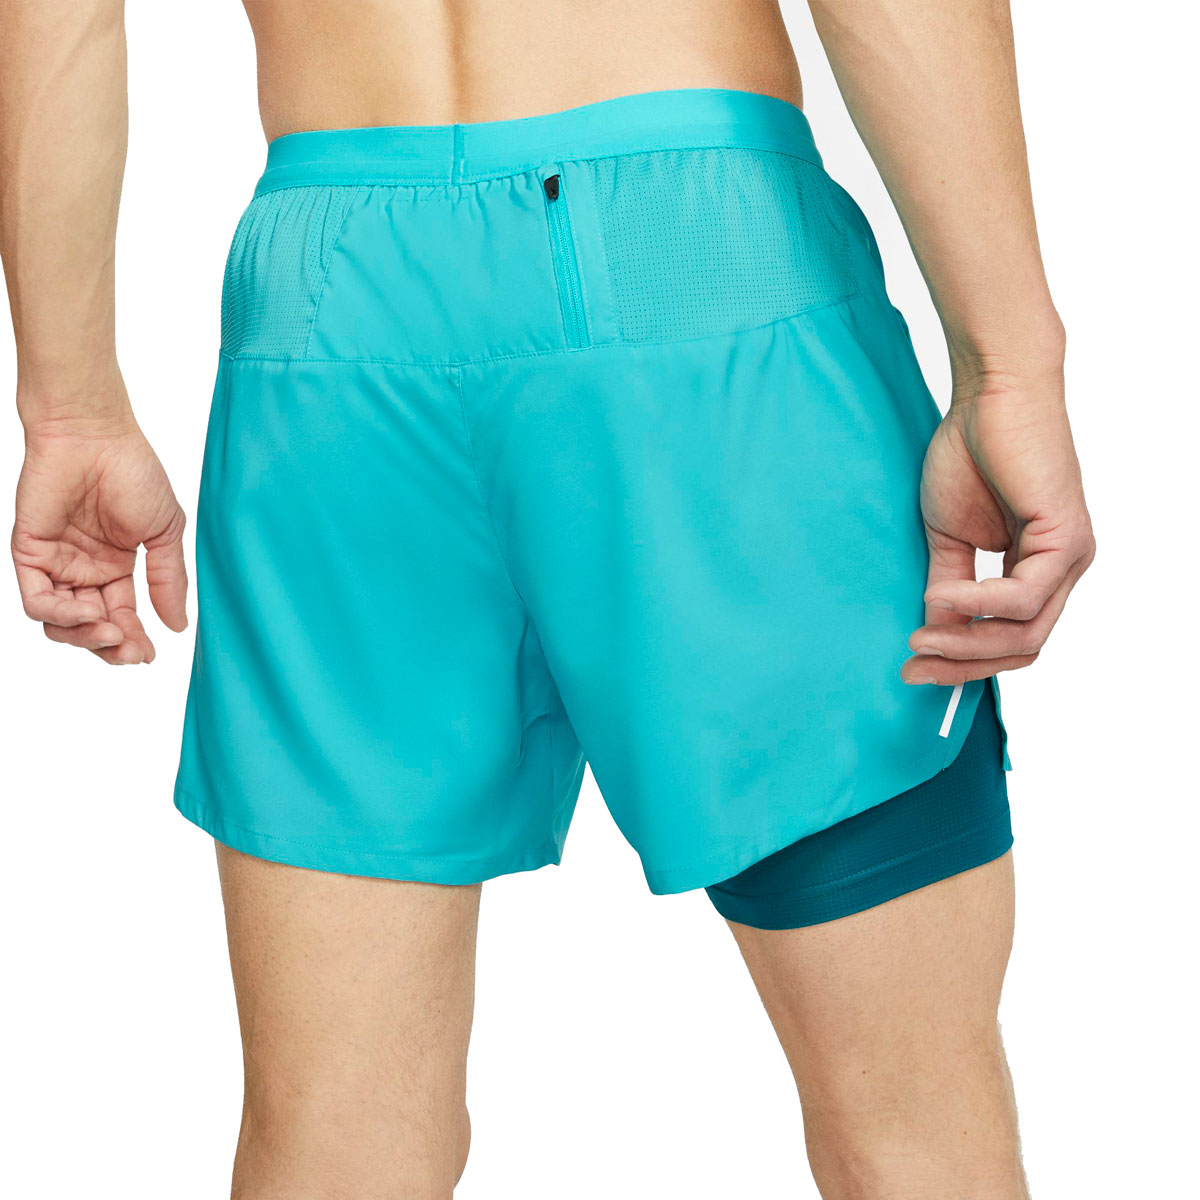 "Men's Nike Flex Stride 5"" 2-In-1 Running Shorts - Color: Oracle Aqua/Reflective Silver - Size: S, Oracle Aqua/Reflective Silver, large, image 2"